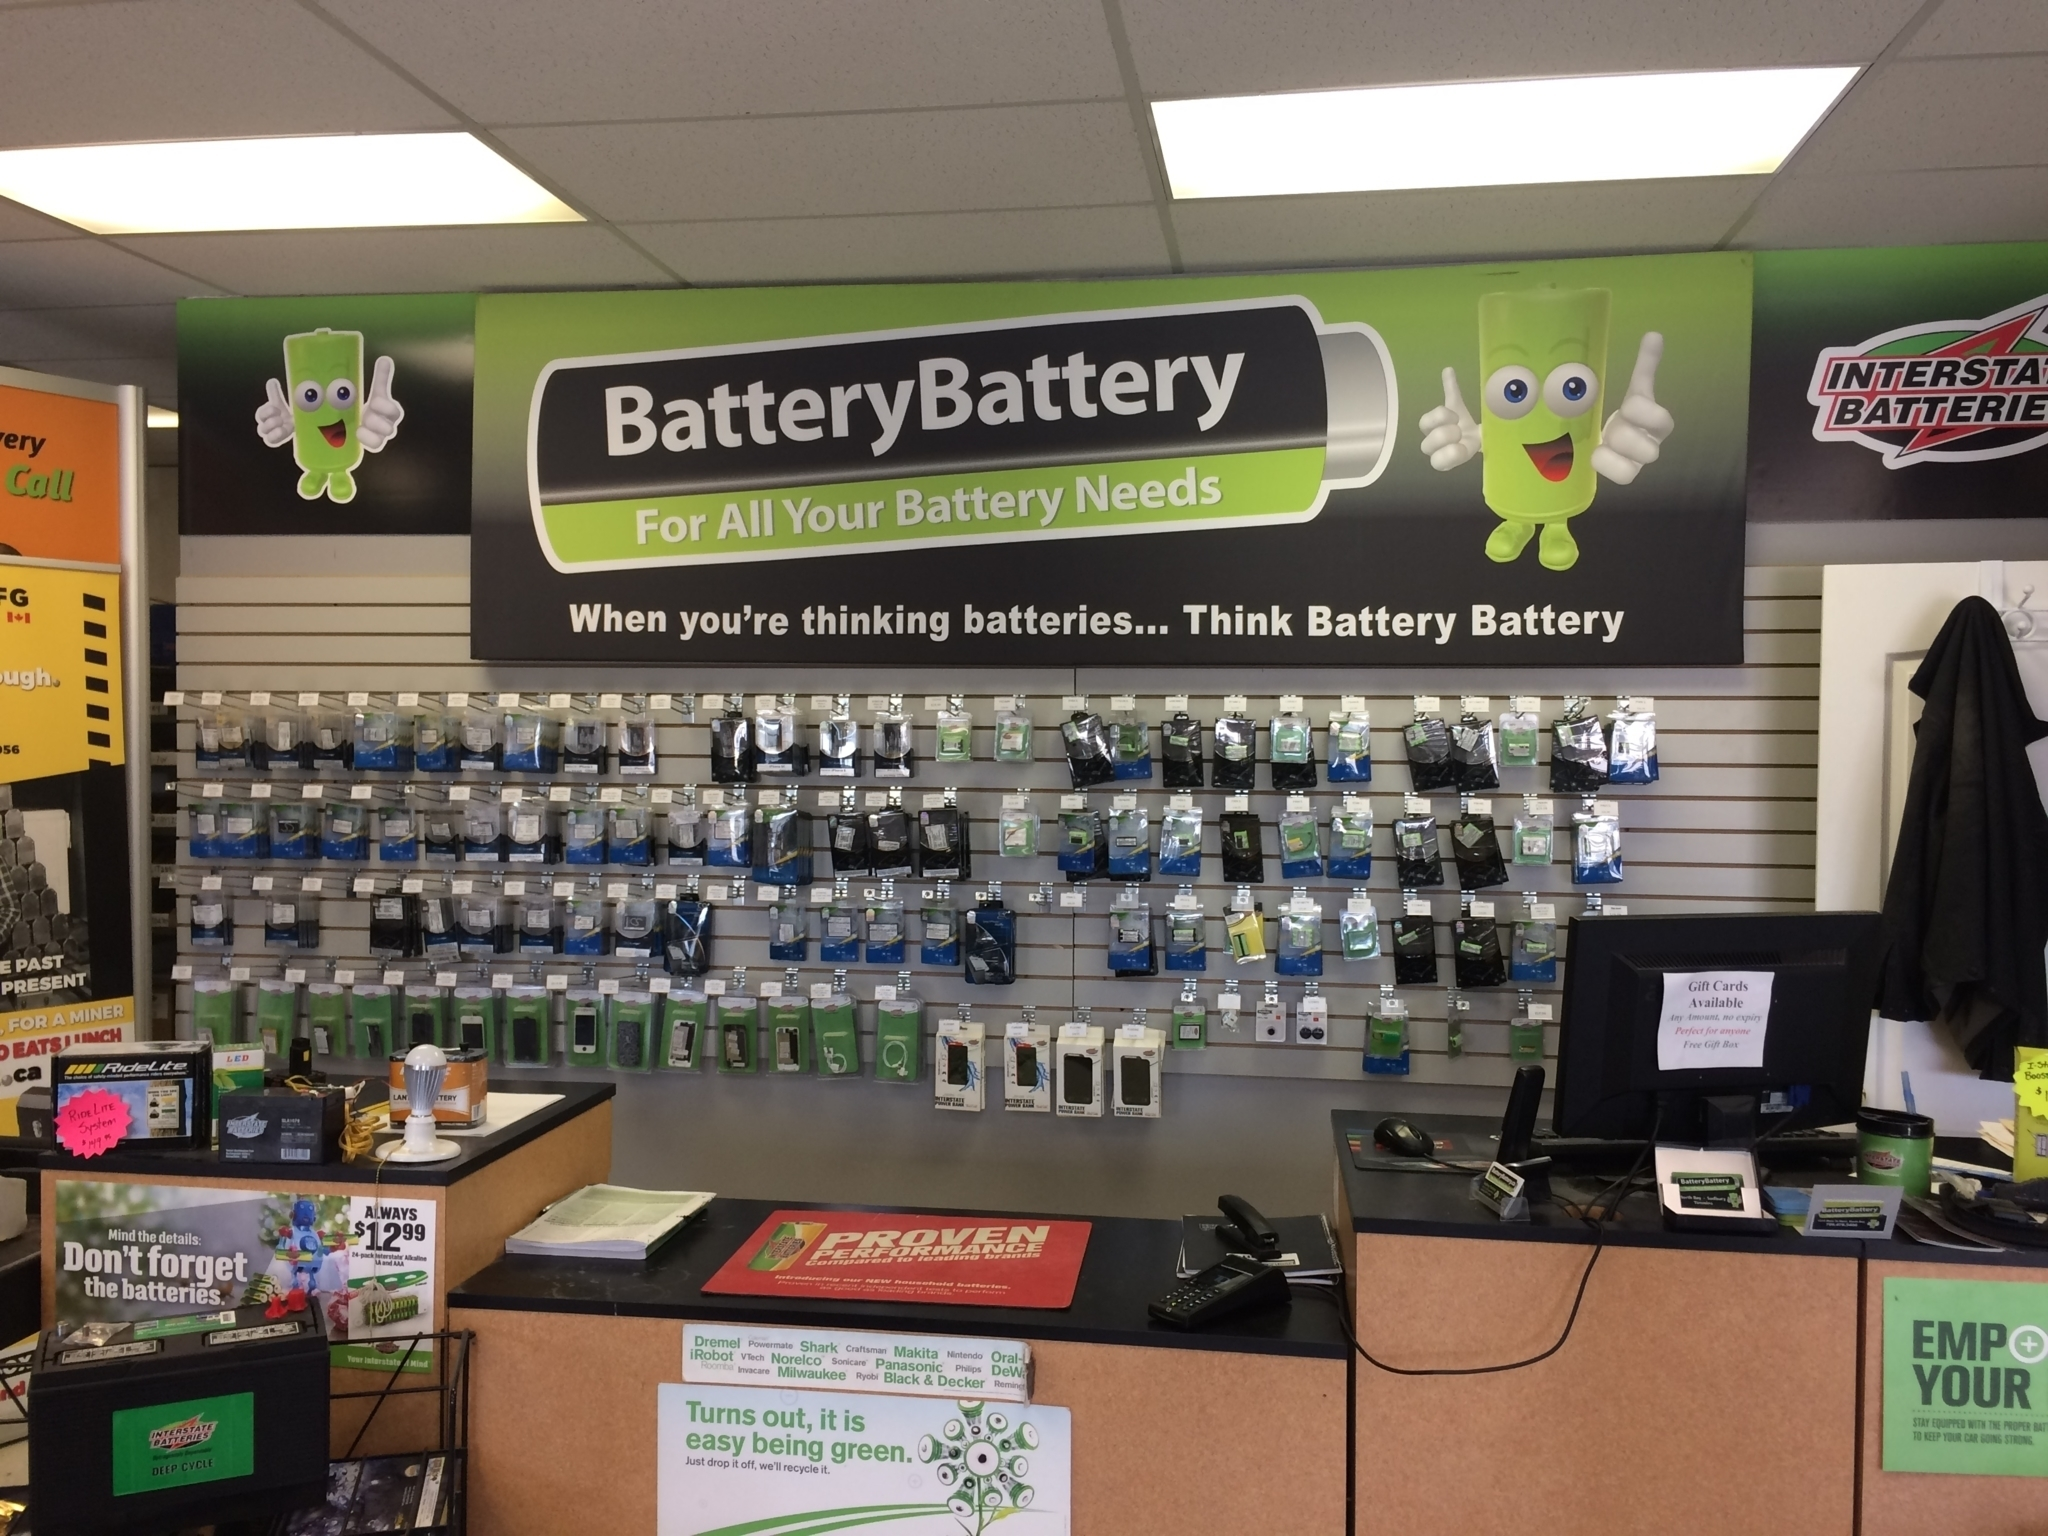 Battery Battery Sudbury in Sudbury: Batteries for Cell Phones, Cordless Phones, Walkie-Talkies and more!